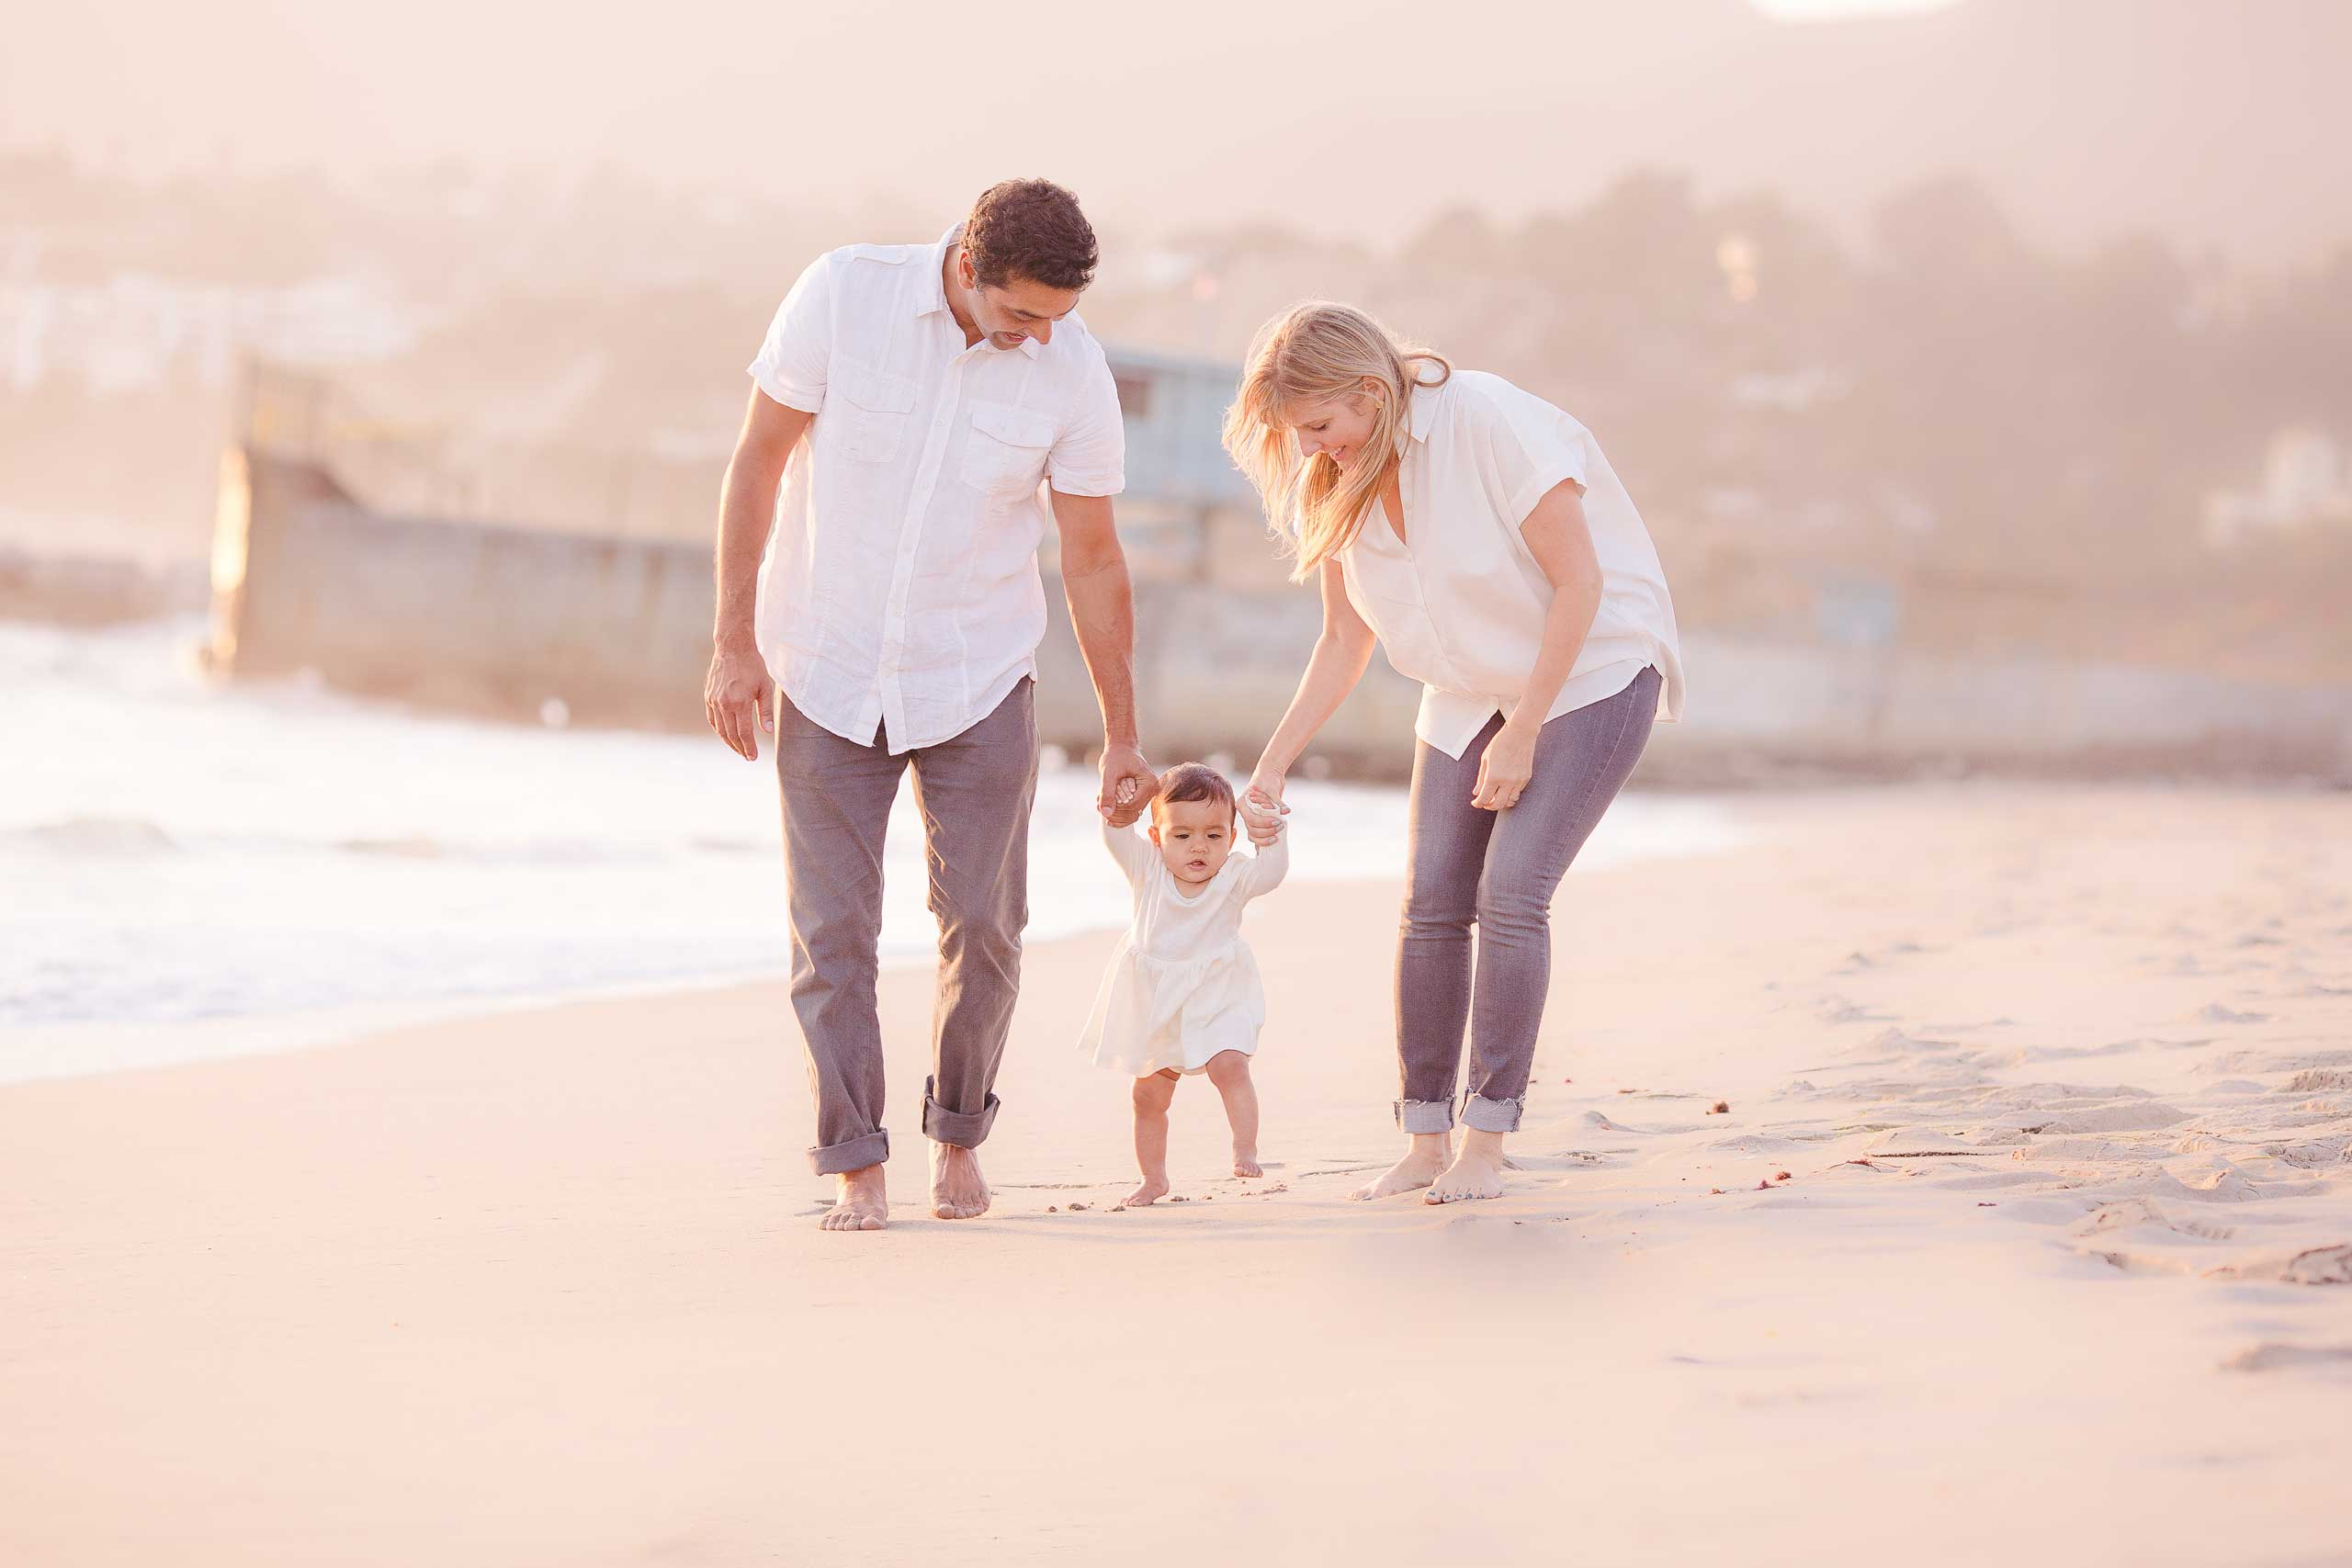 Family photos taken by Ramina Magid Photography in Los Angeles